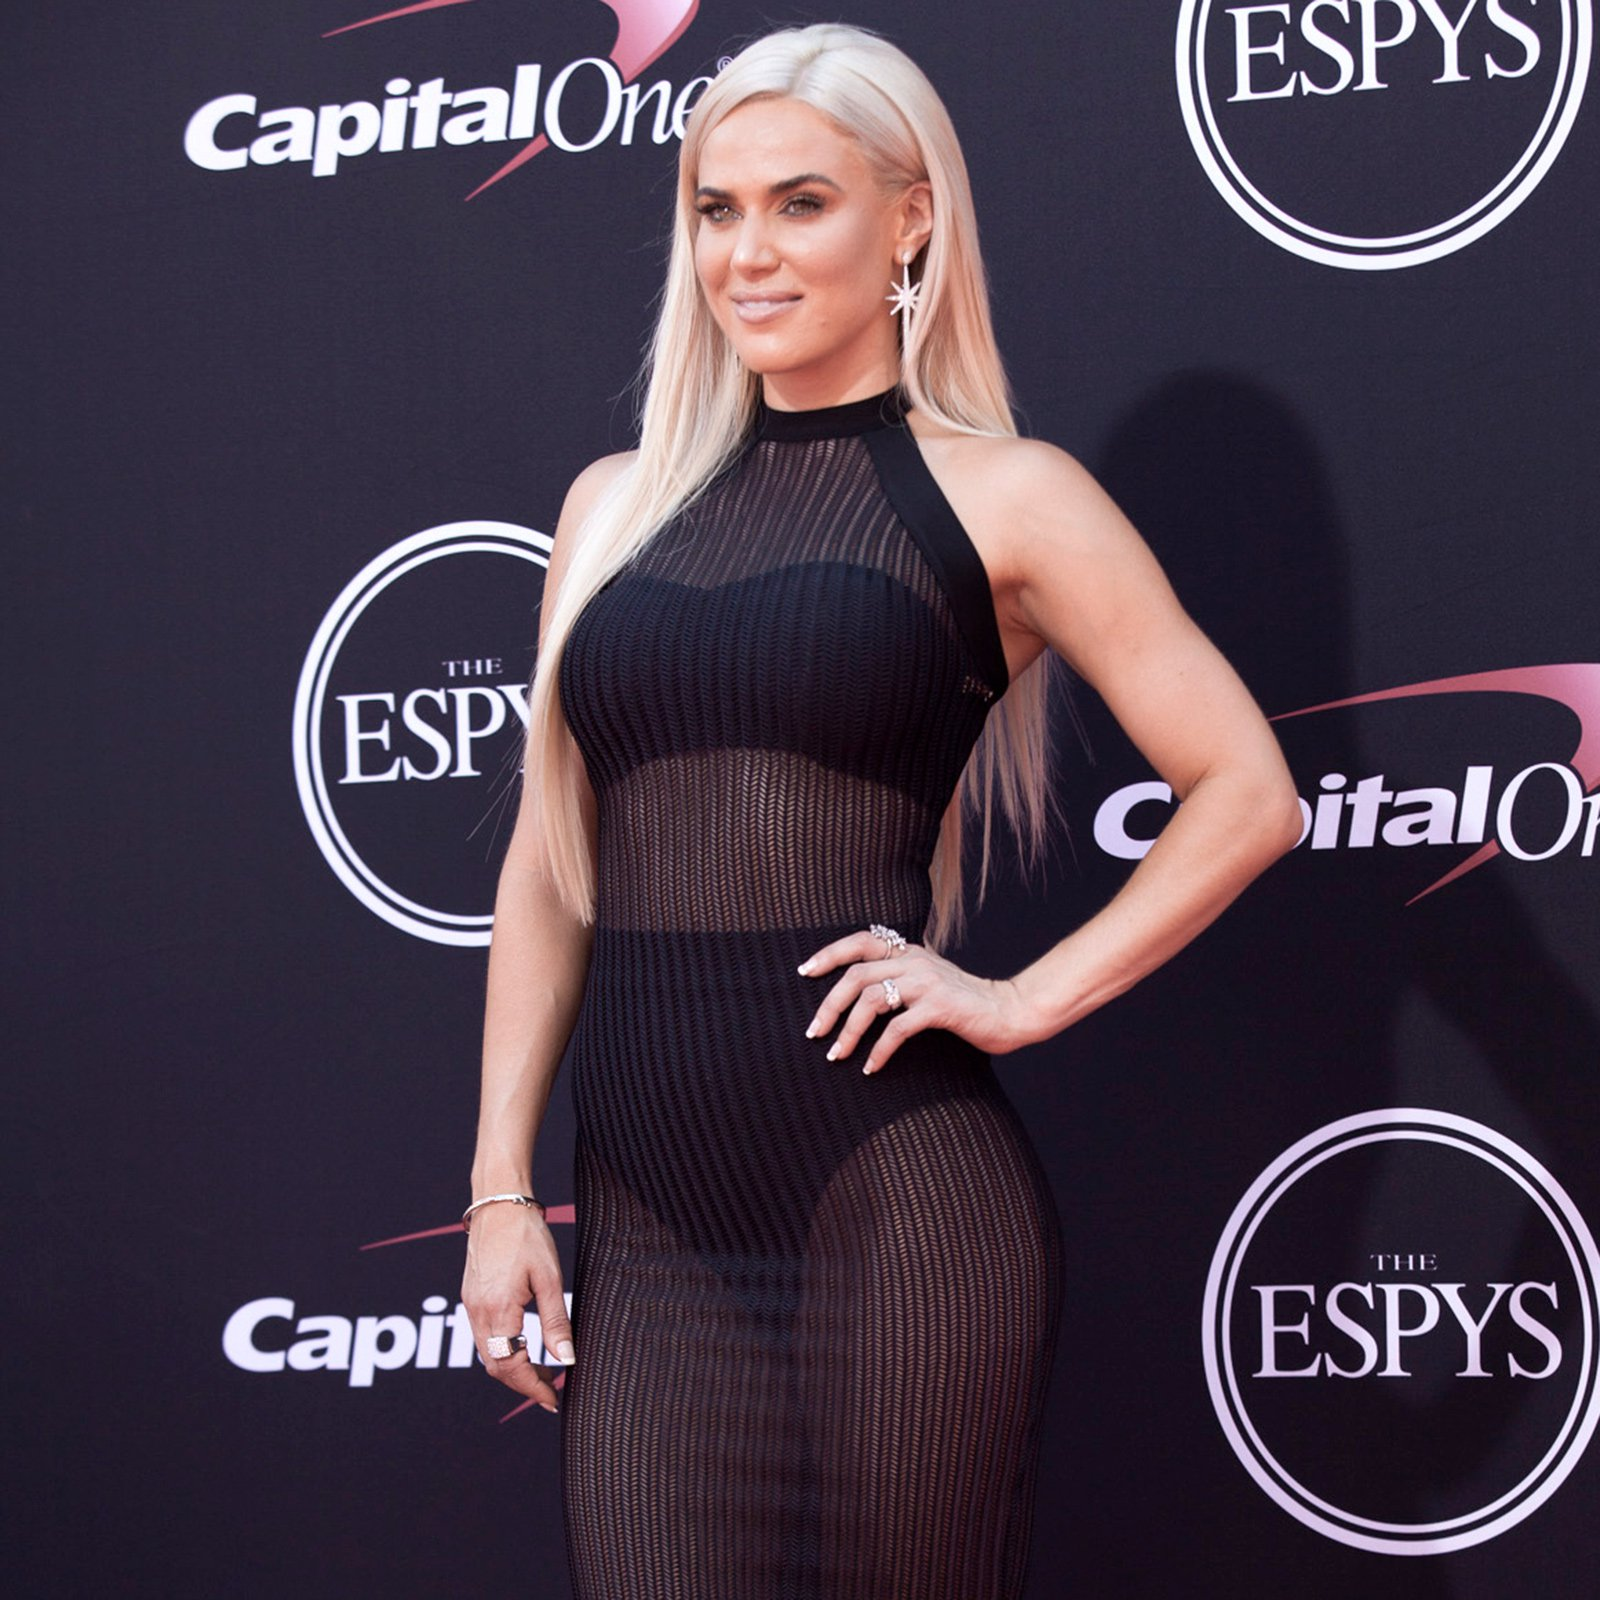 Lana poses on the ESPYs red carpet.